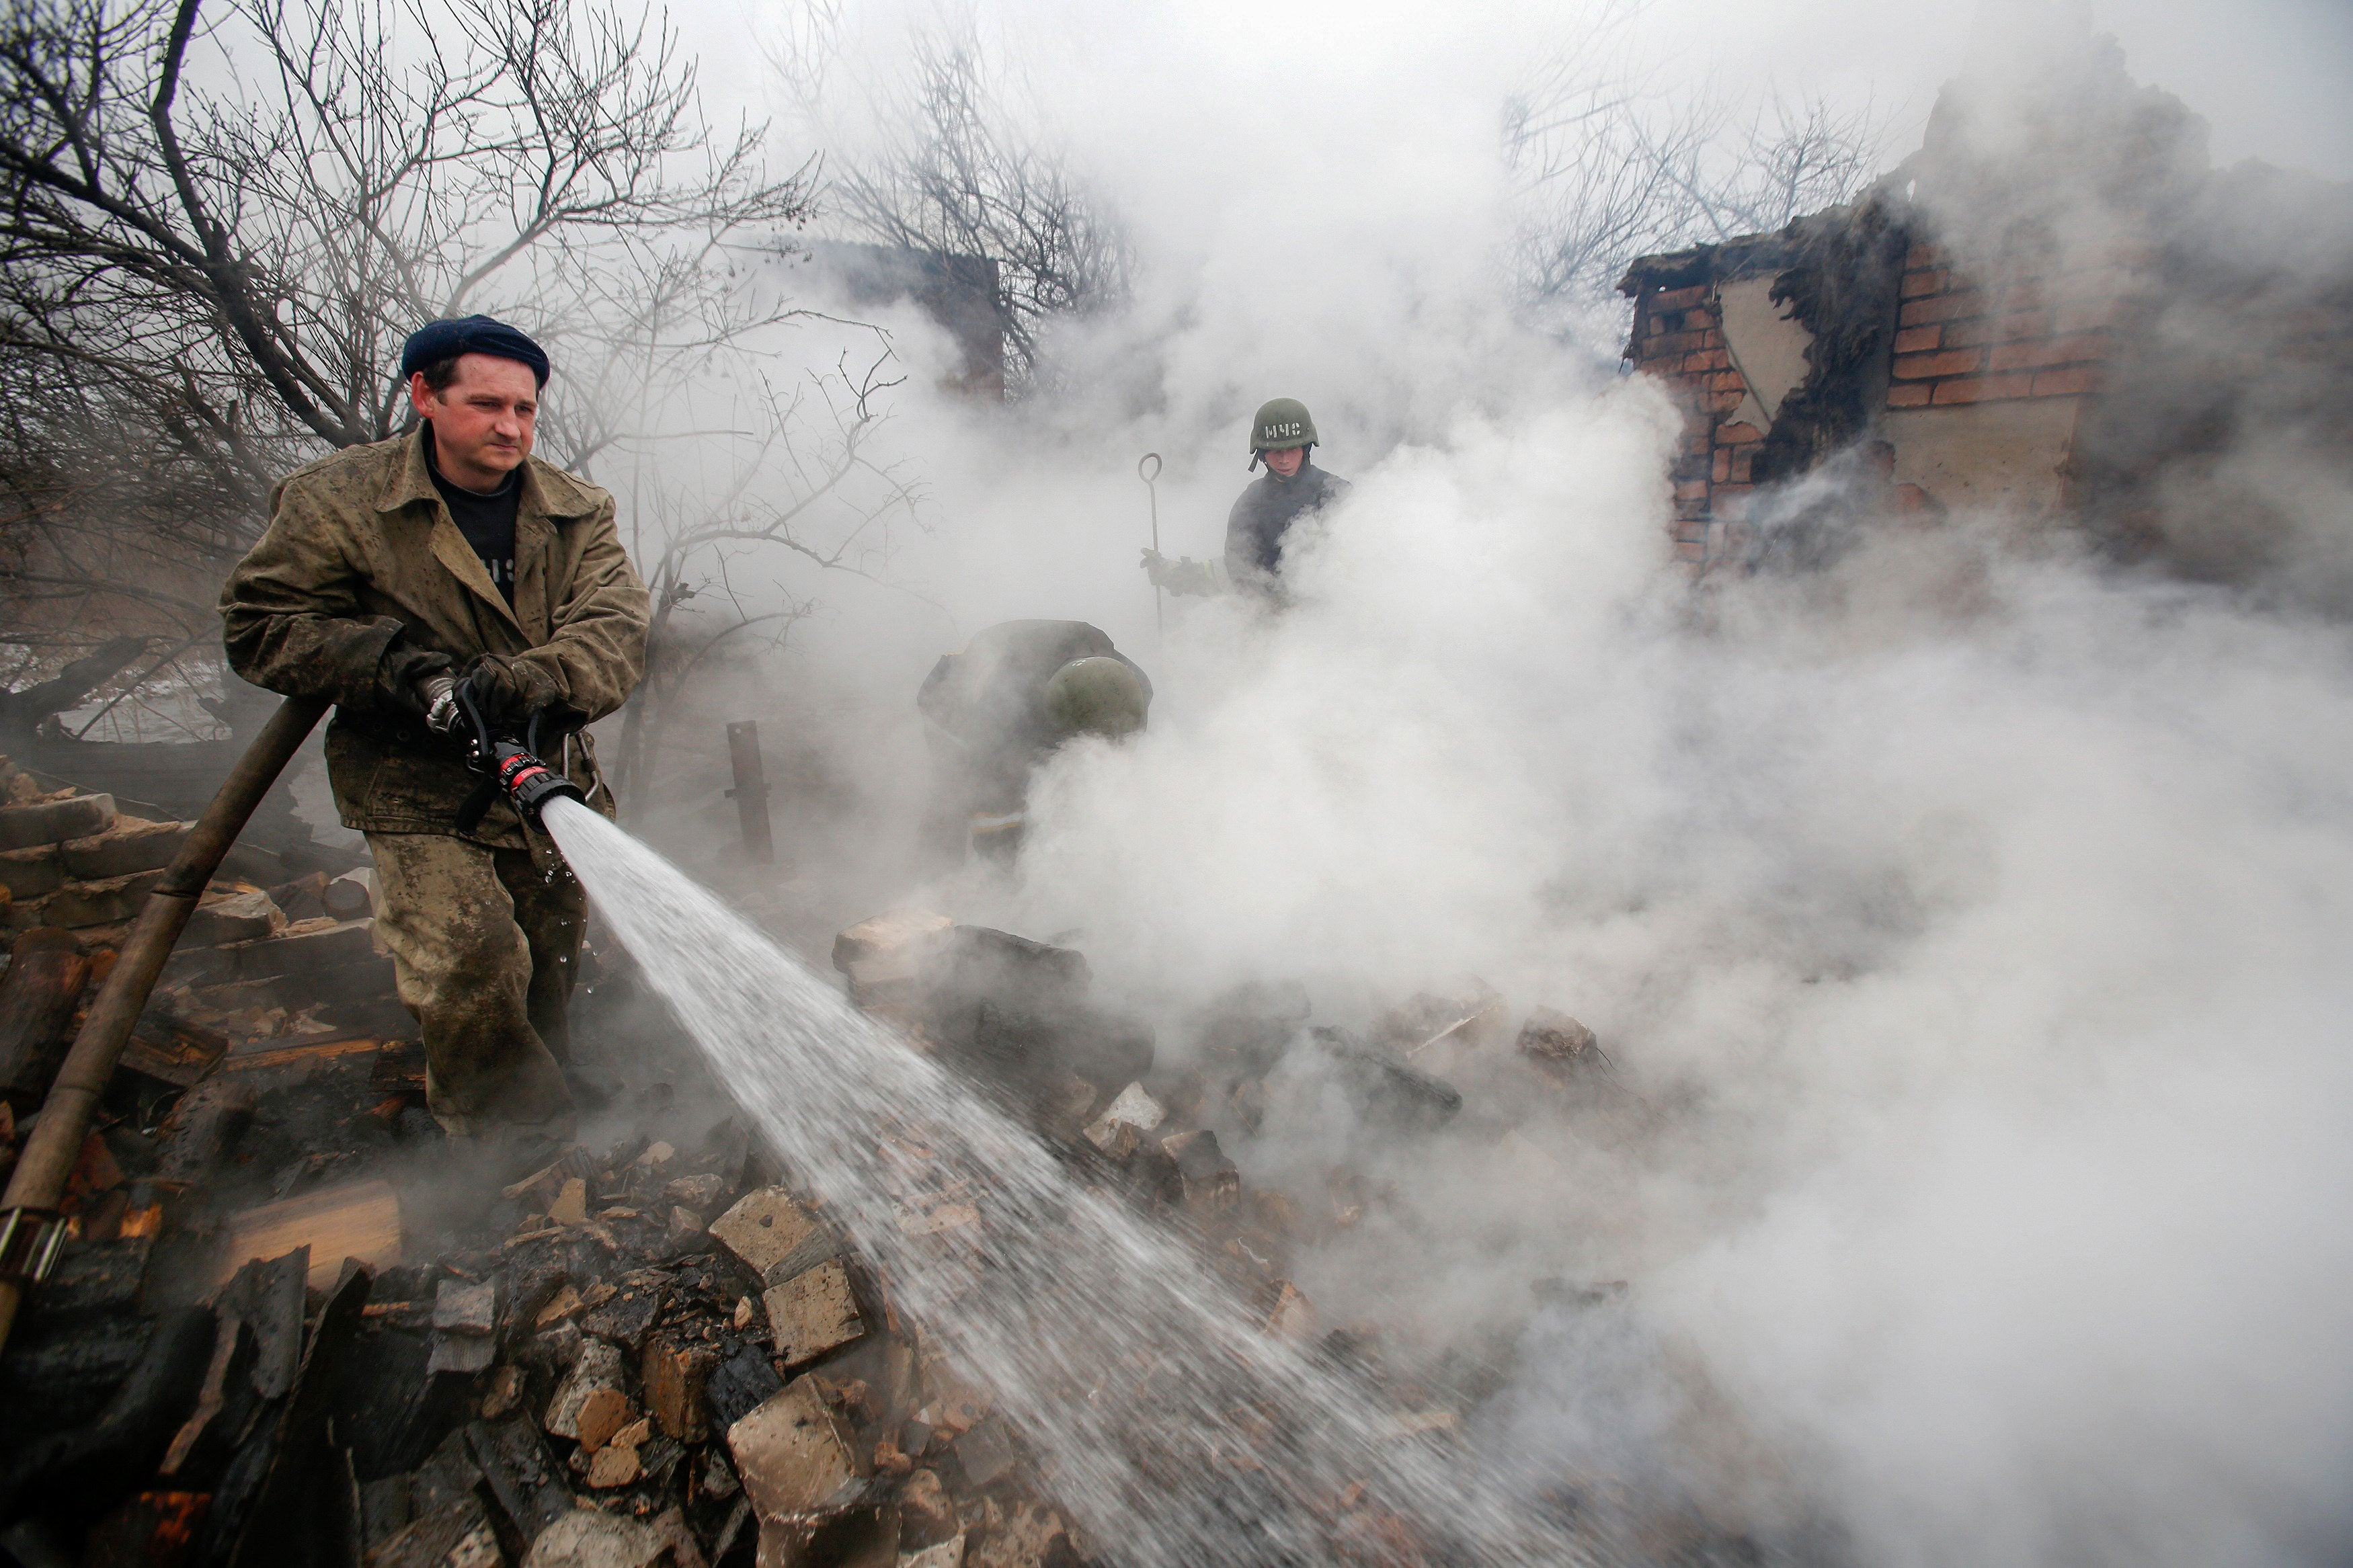 Ukrainian rescuers try to extinguish a fire after a shelling of Avdiivka, Ukraine, Feb. 25, 2017. (Photo: Valeri Kvit/EPA/Newscom)